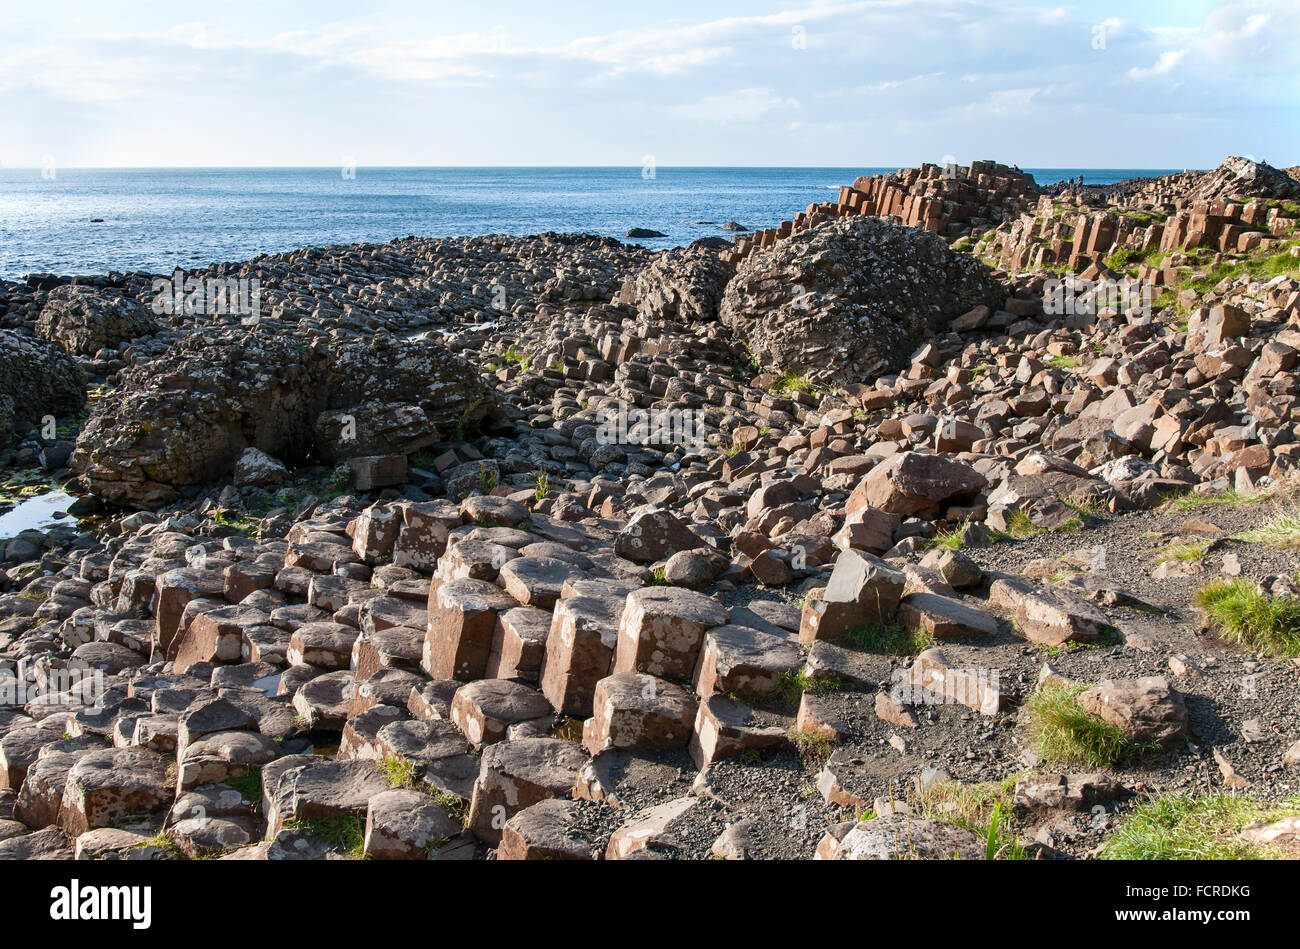 Giants Causeway, unique geological formation of rocks and stones on the coast of Antrim County, Northern Ireland, - Stock Image